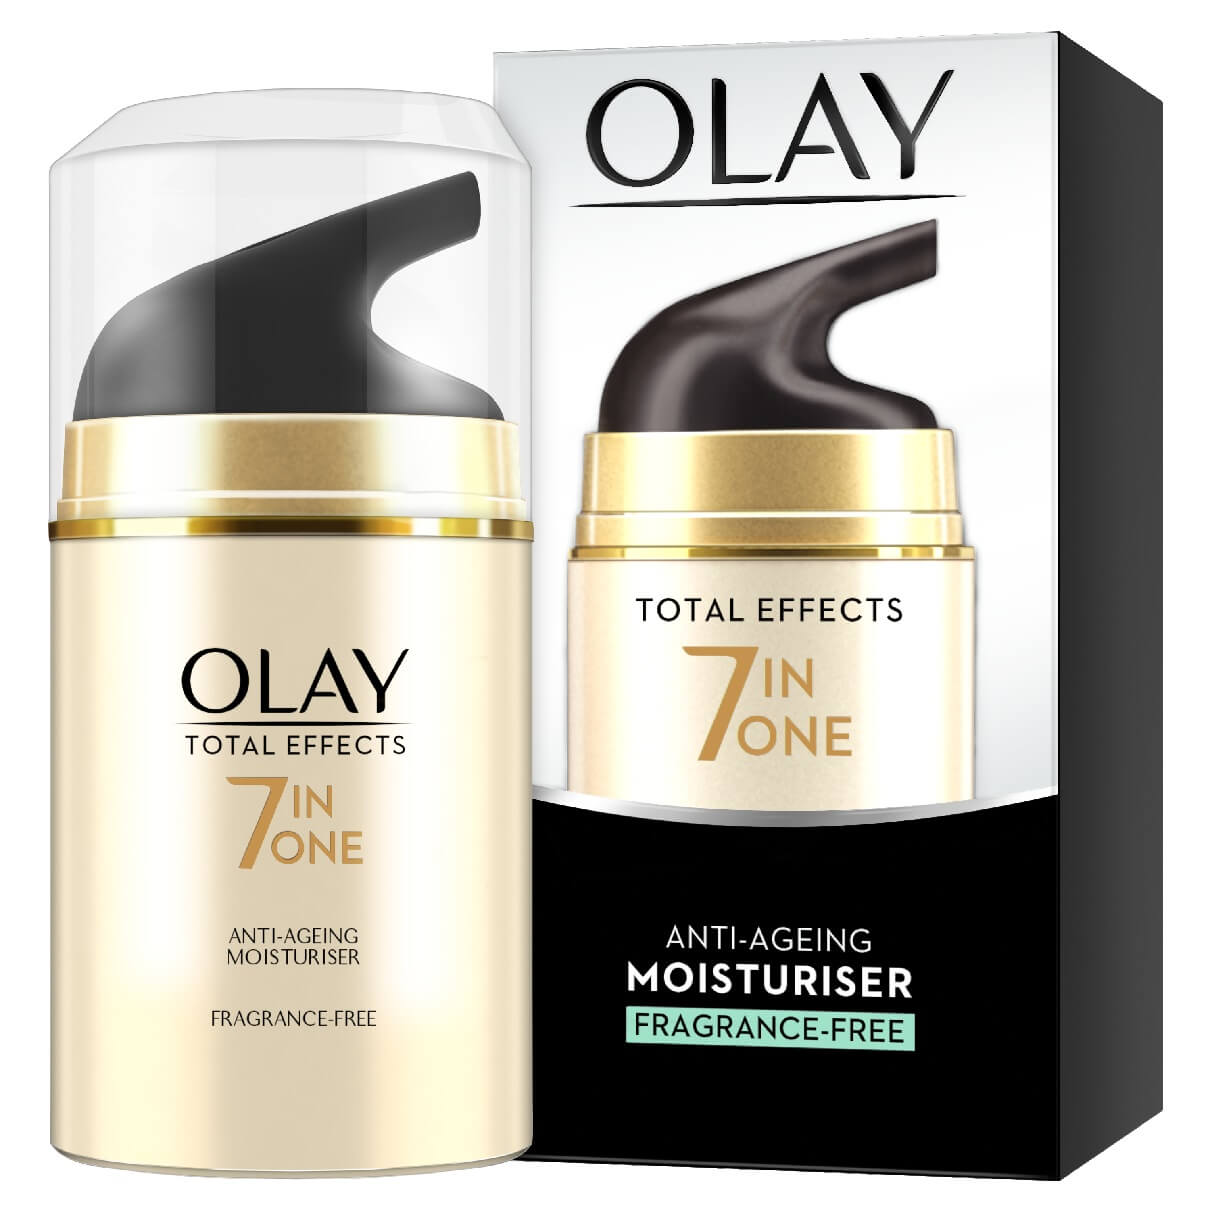 Olay Total Effects 7in1 Fragrance Free Anti-Ageing Moisturiser 50ml